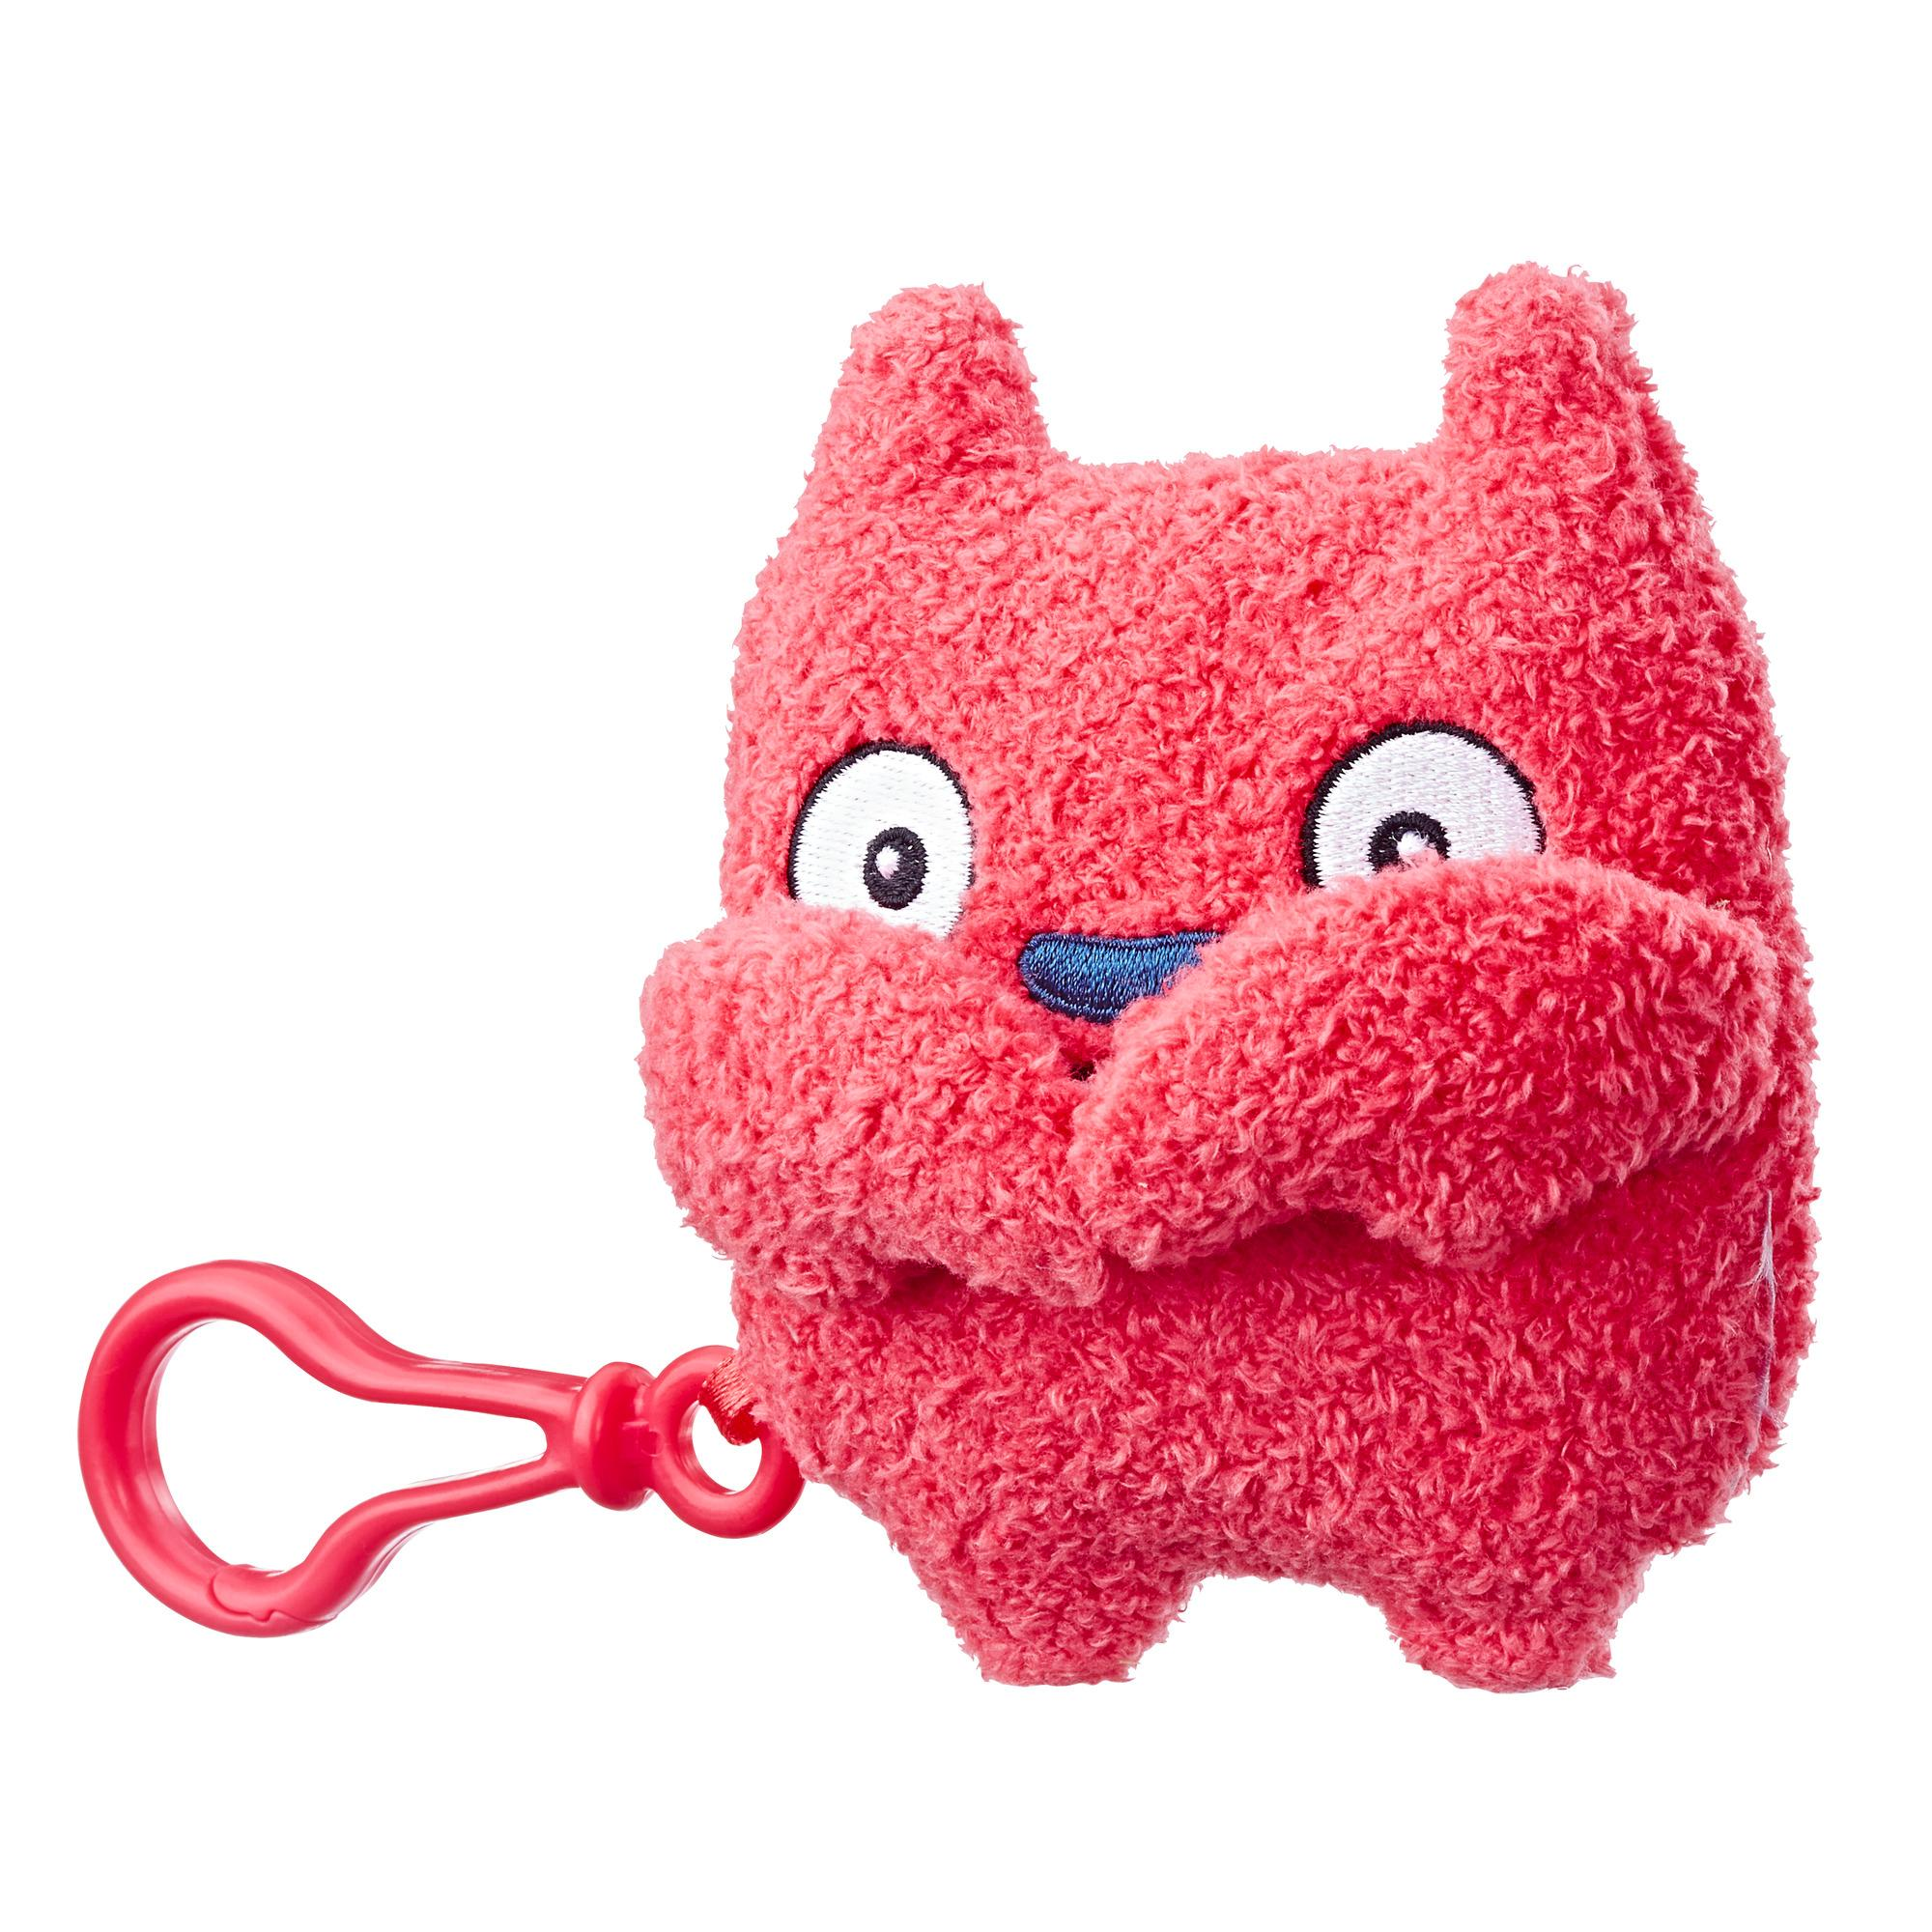 UglyDolls Lucky Bat To-Go Stuffed Plush Toy, 12,5 cm. tall